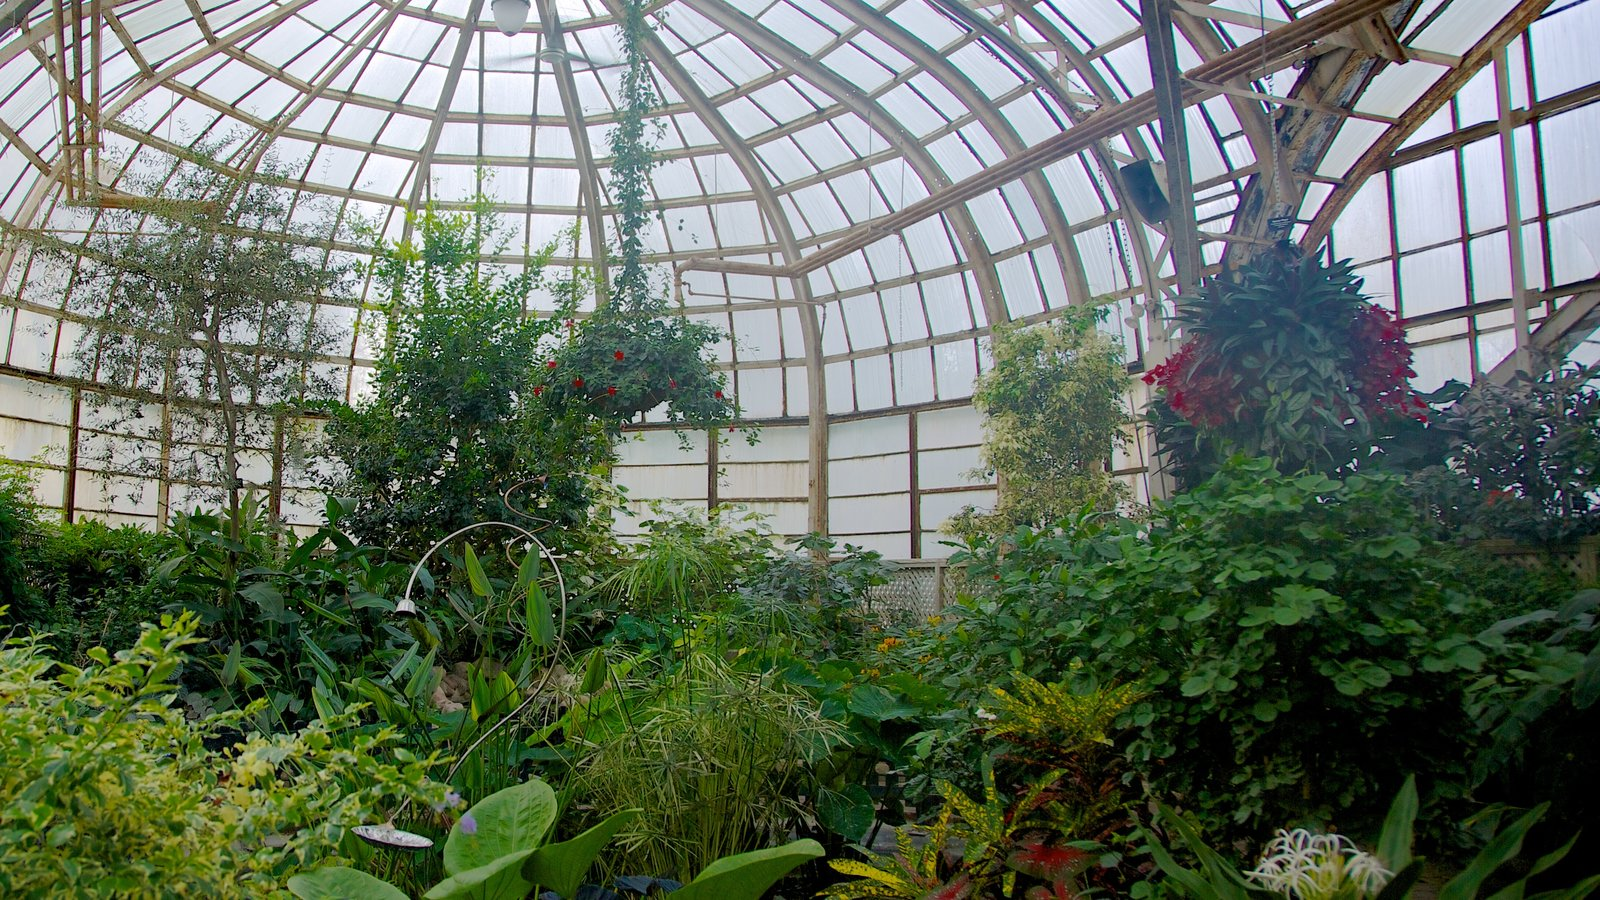 Lincoln Park Conservatory showing a garden, flowers and interior views